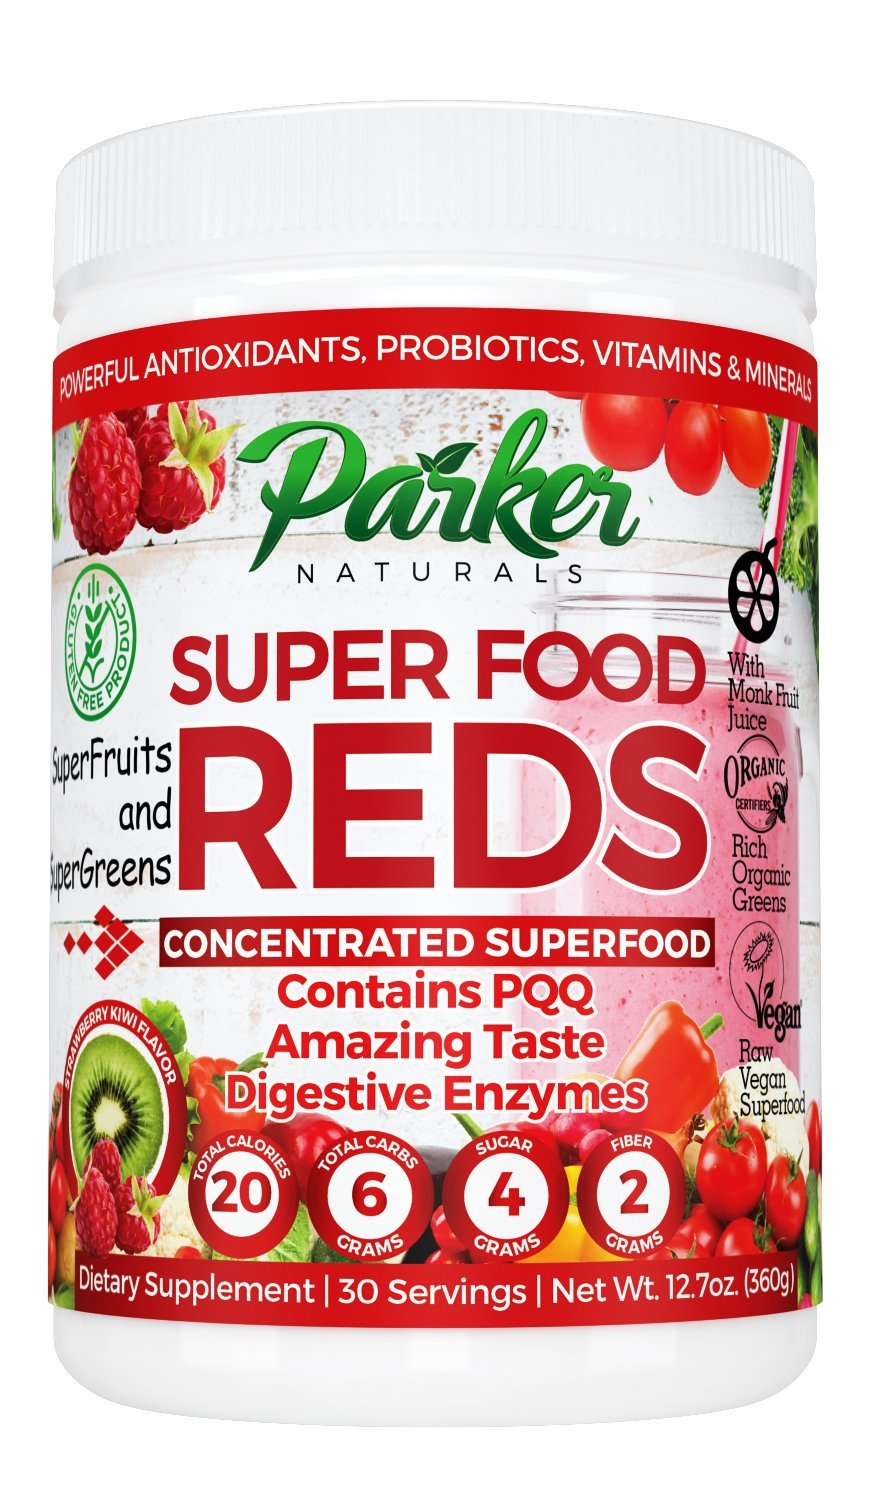 Superfood Reds by Parker Naturals Organic Antioxidant Powder: Super Food Energy Mix with SuperFruits and SuperGreens. High ORAC Score. by Parker Naturals